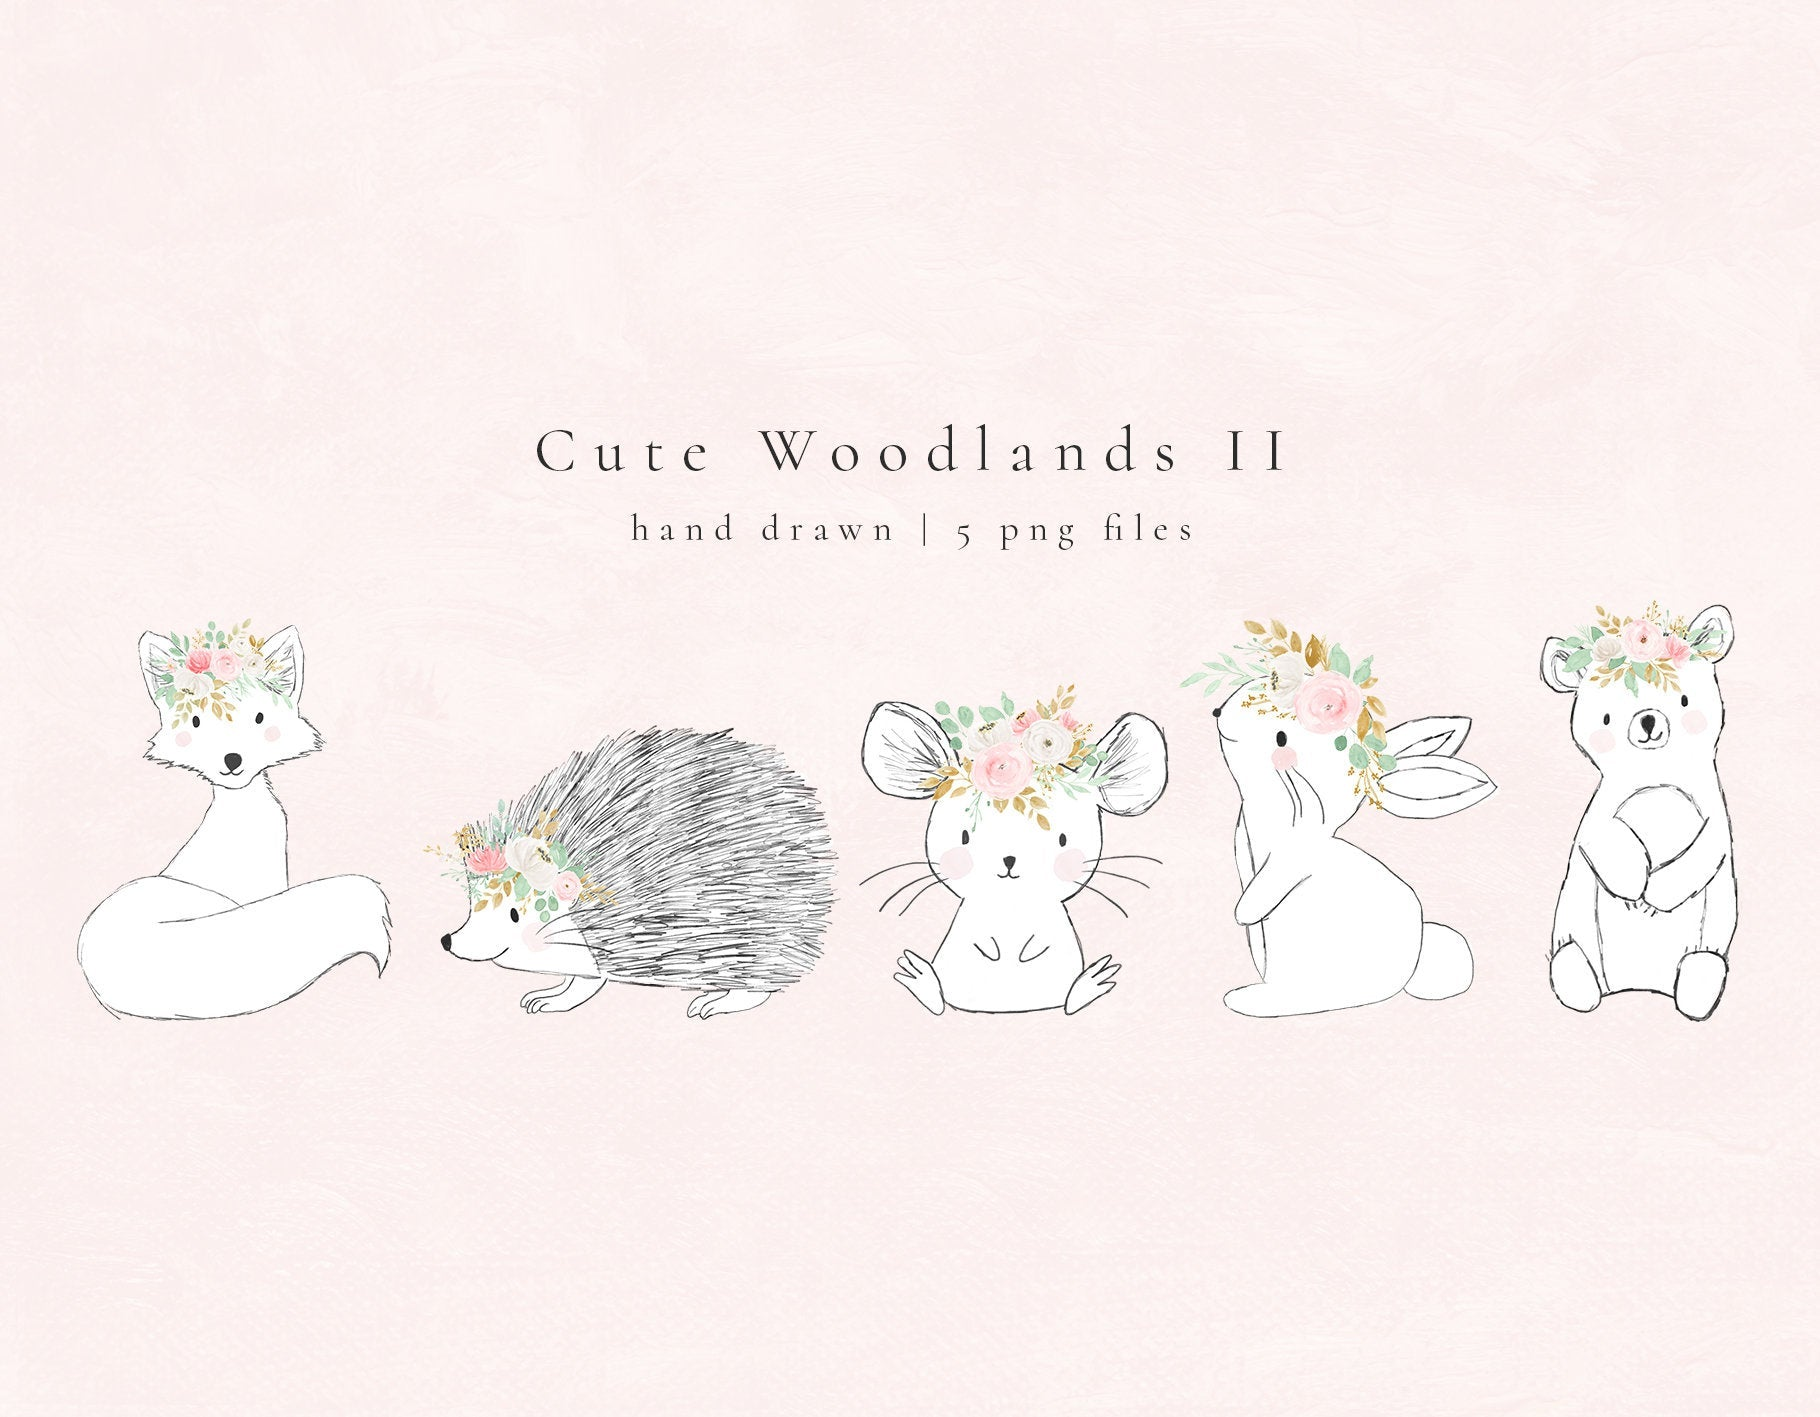 Cute Woodlands II